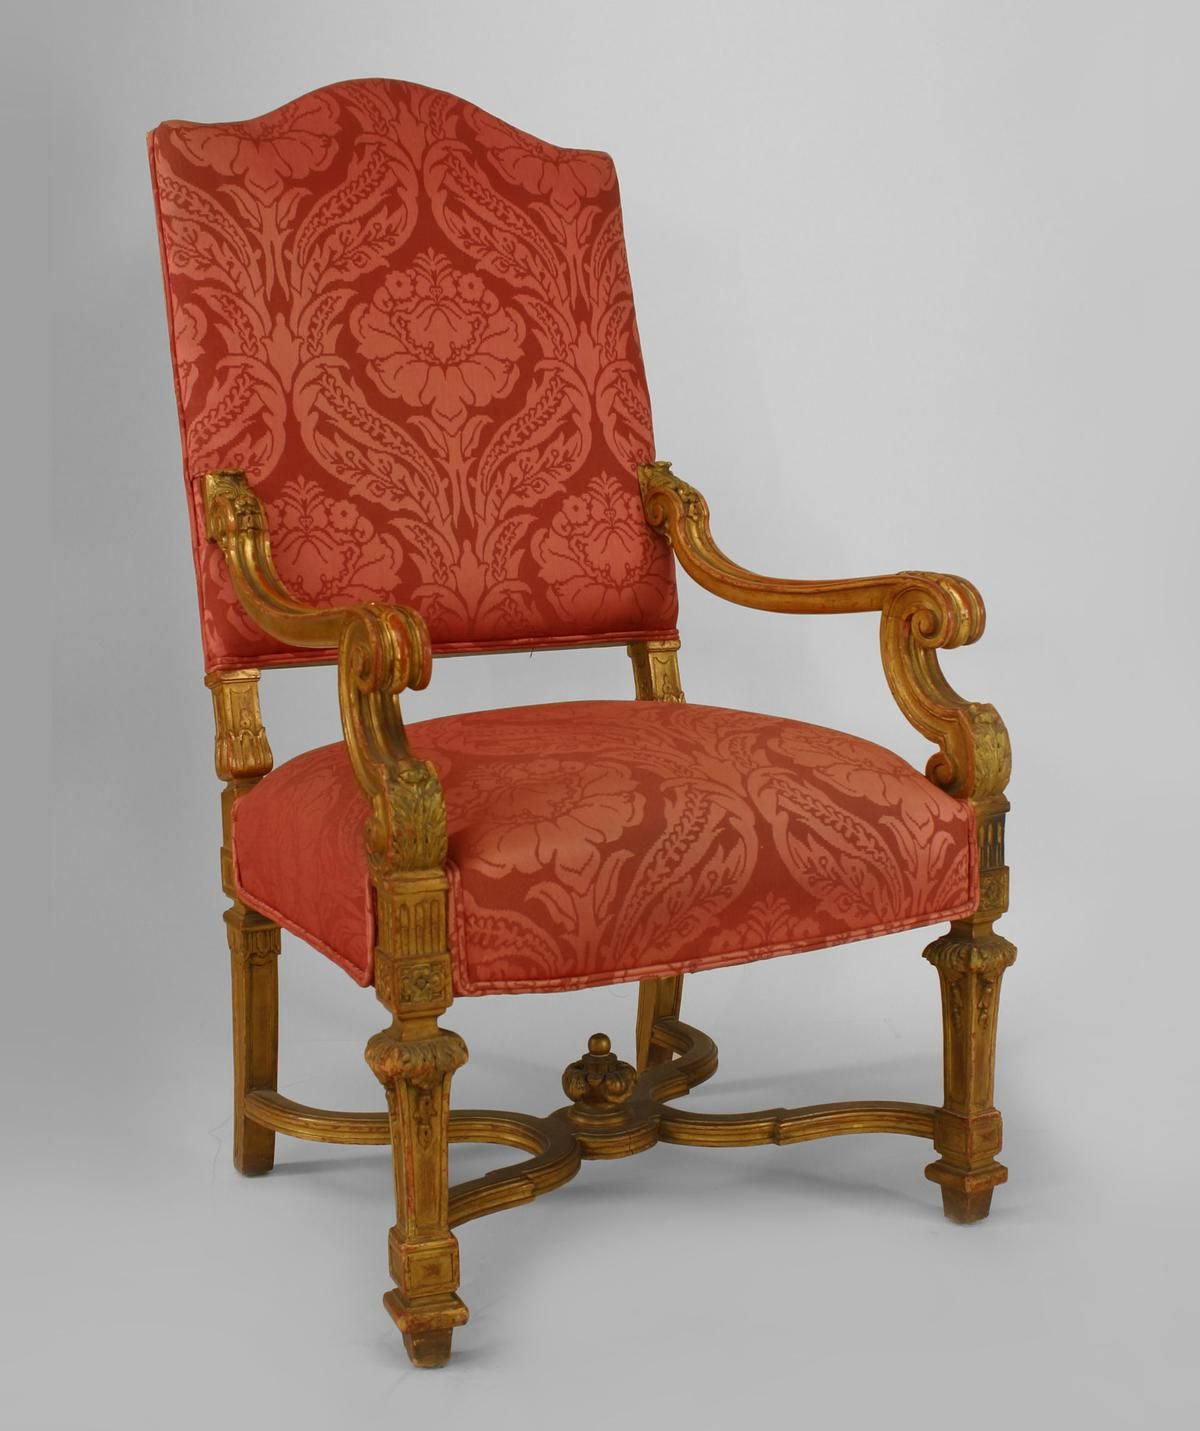 Louis The 14th Furniture French Louis Xiv Seating Chair Set Gilt Louis Xiv